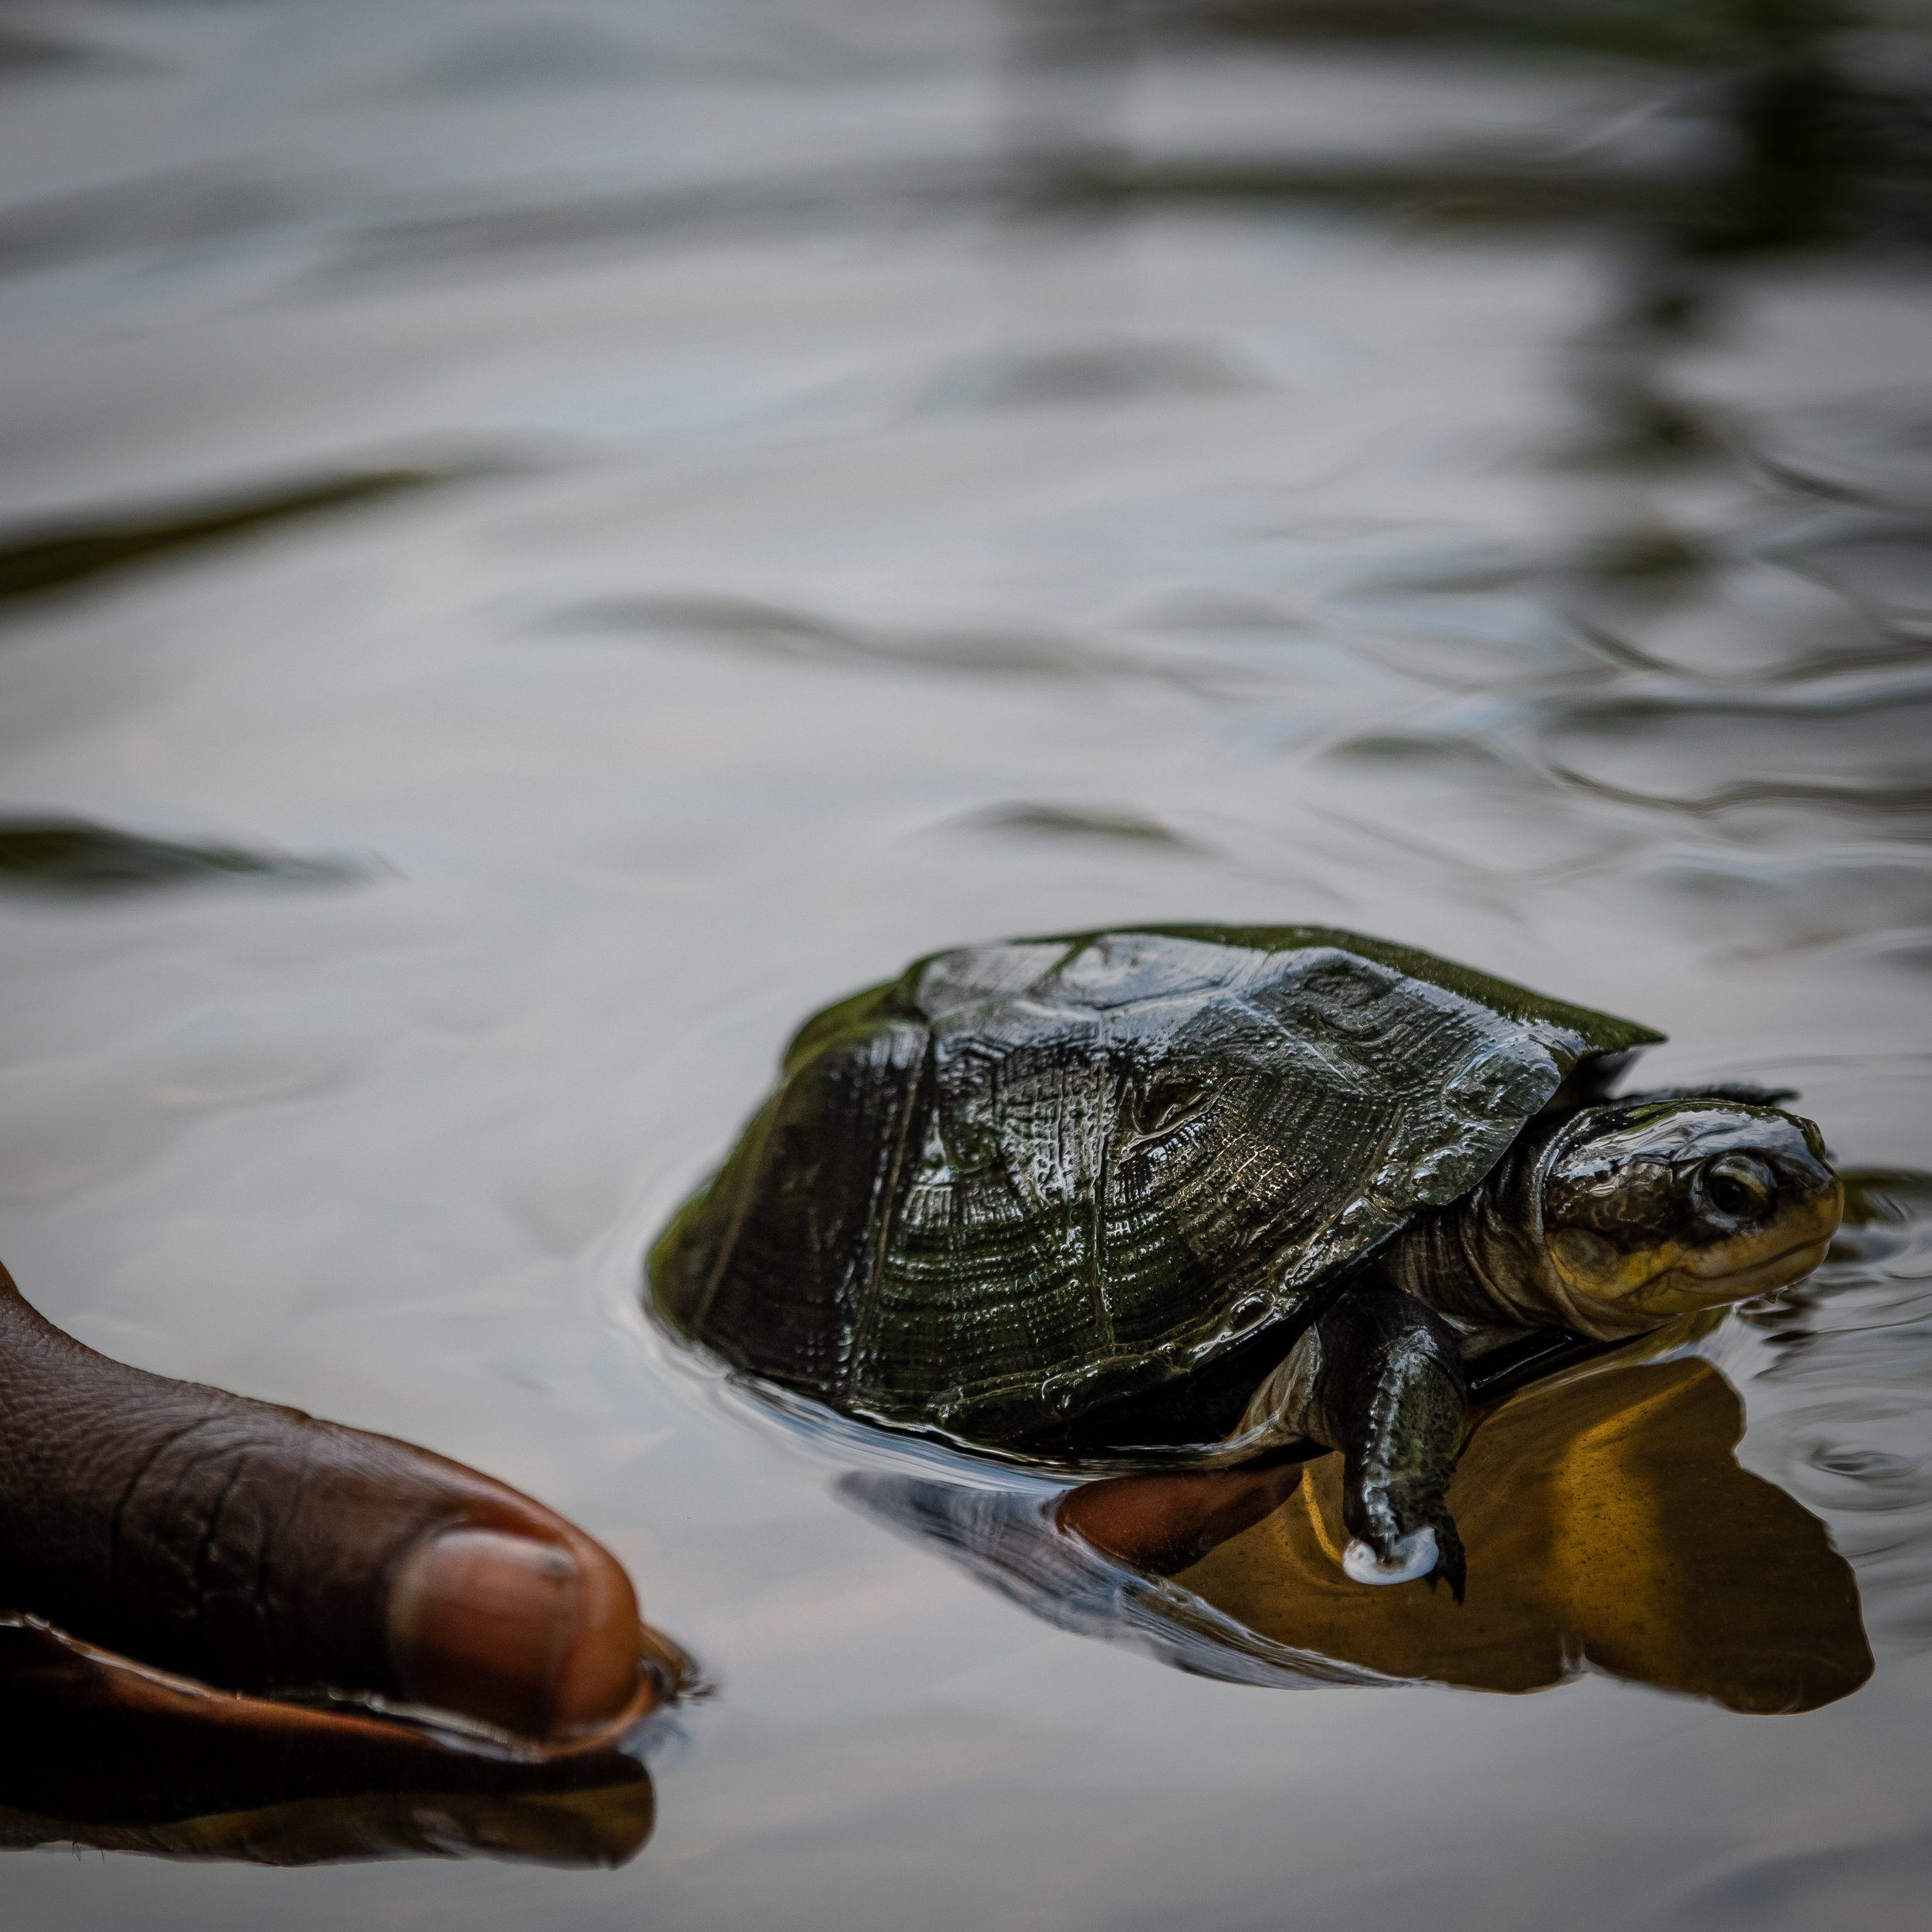 Ghislain releasing a turtle after having rescued it from poachers